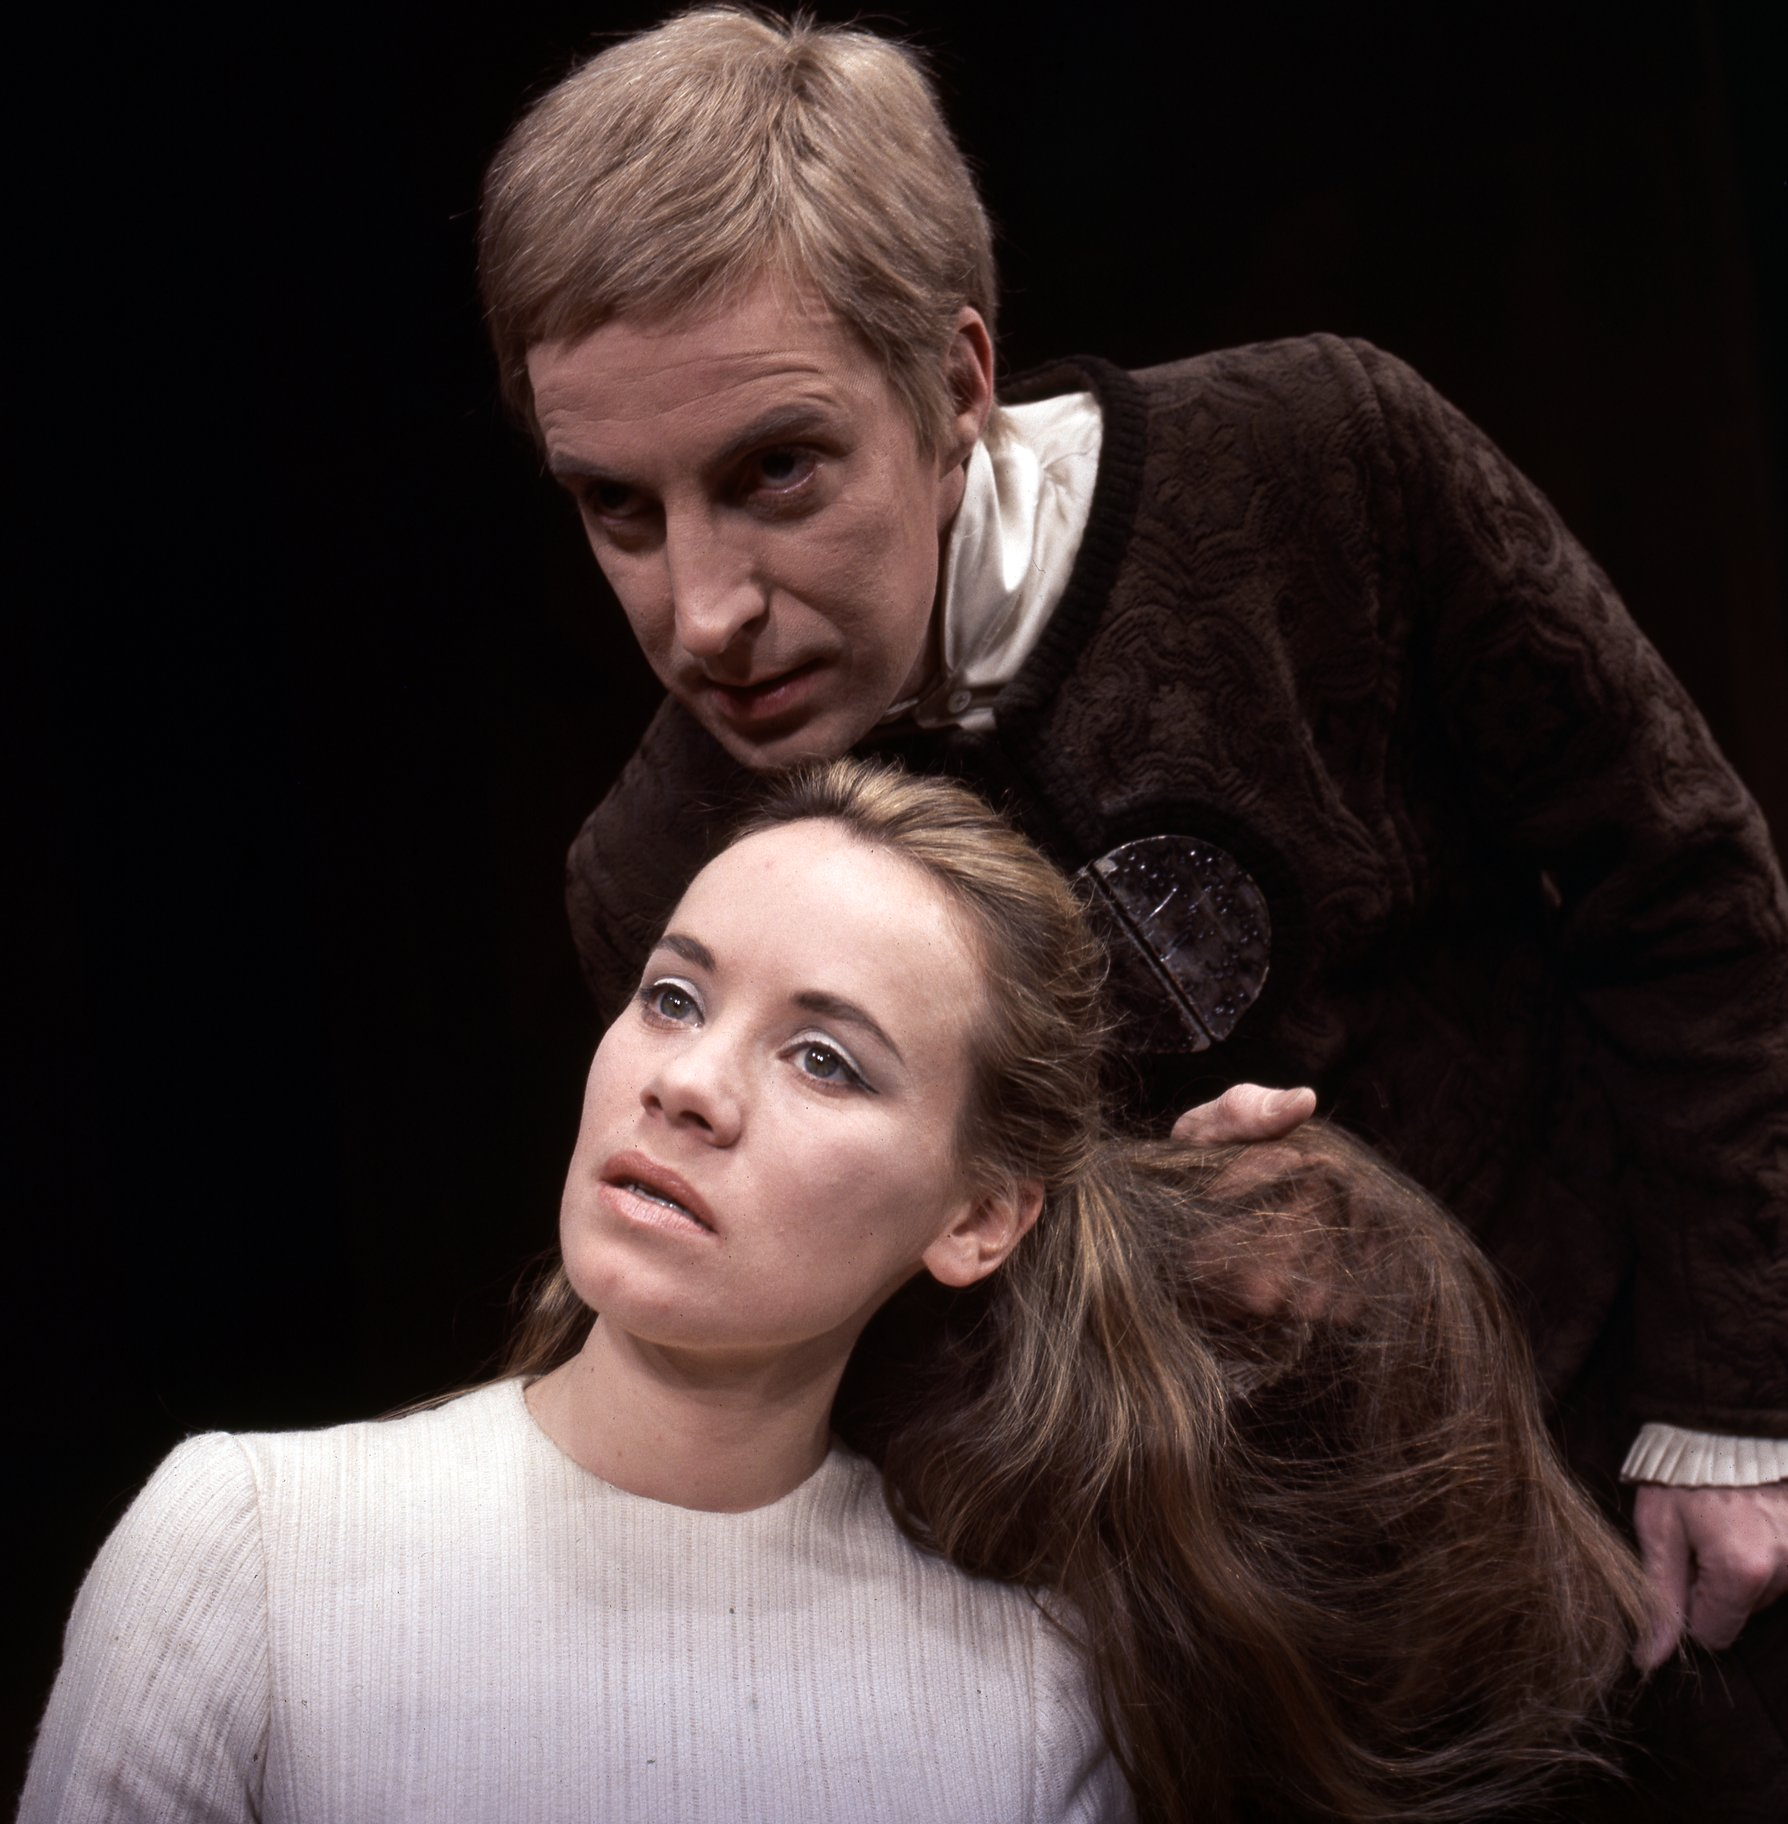 A man leans over a woman, pulling at her hair.